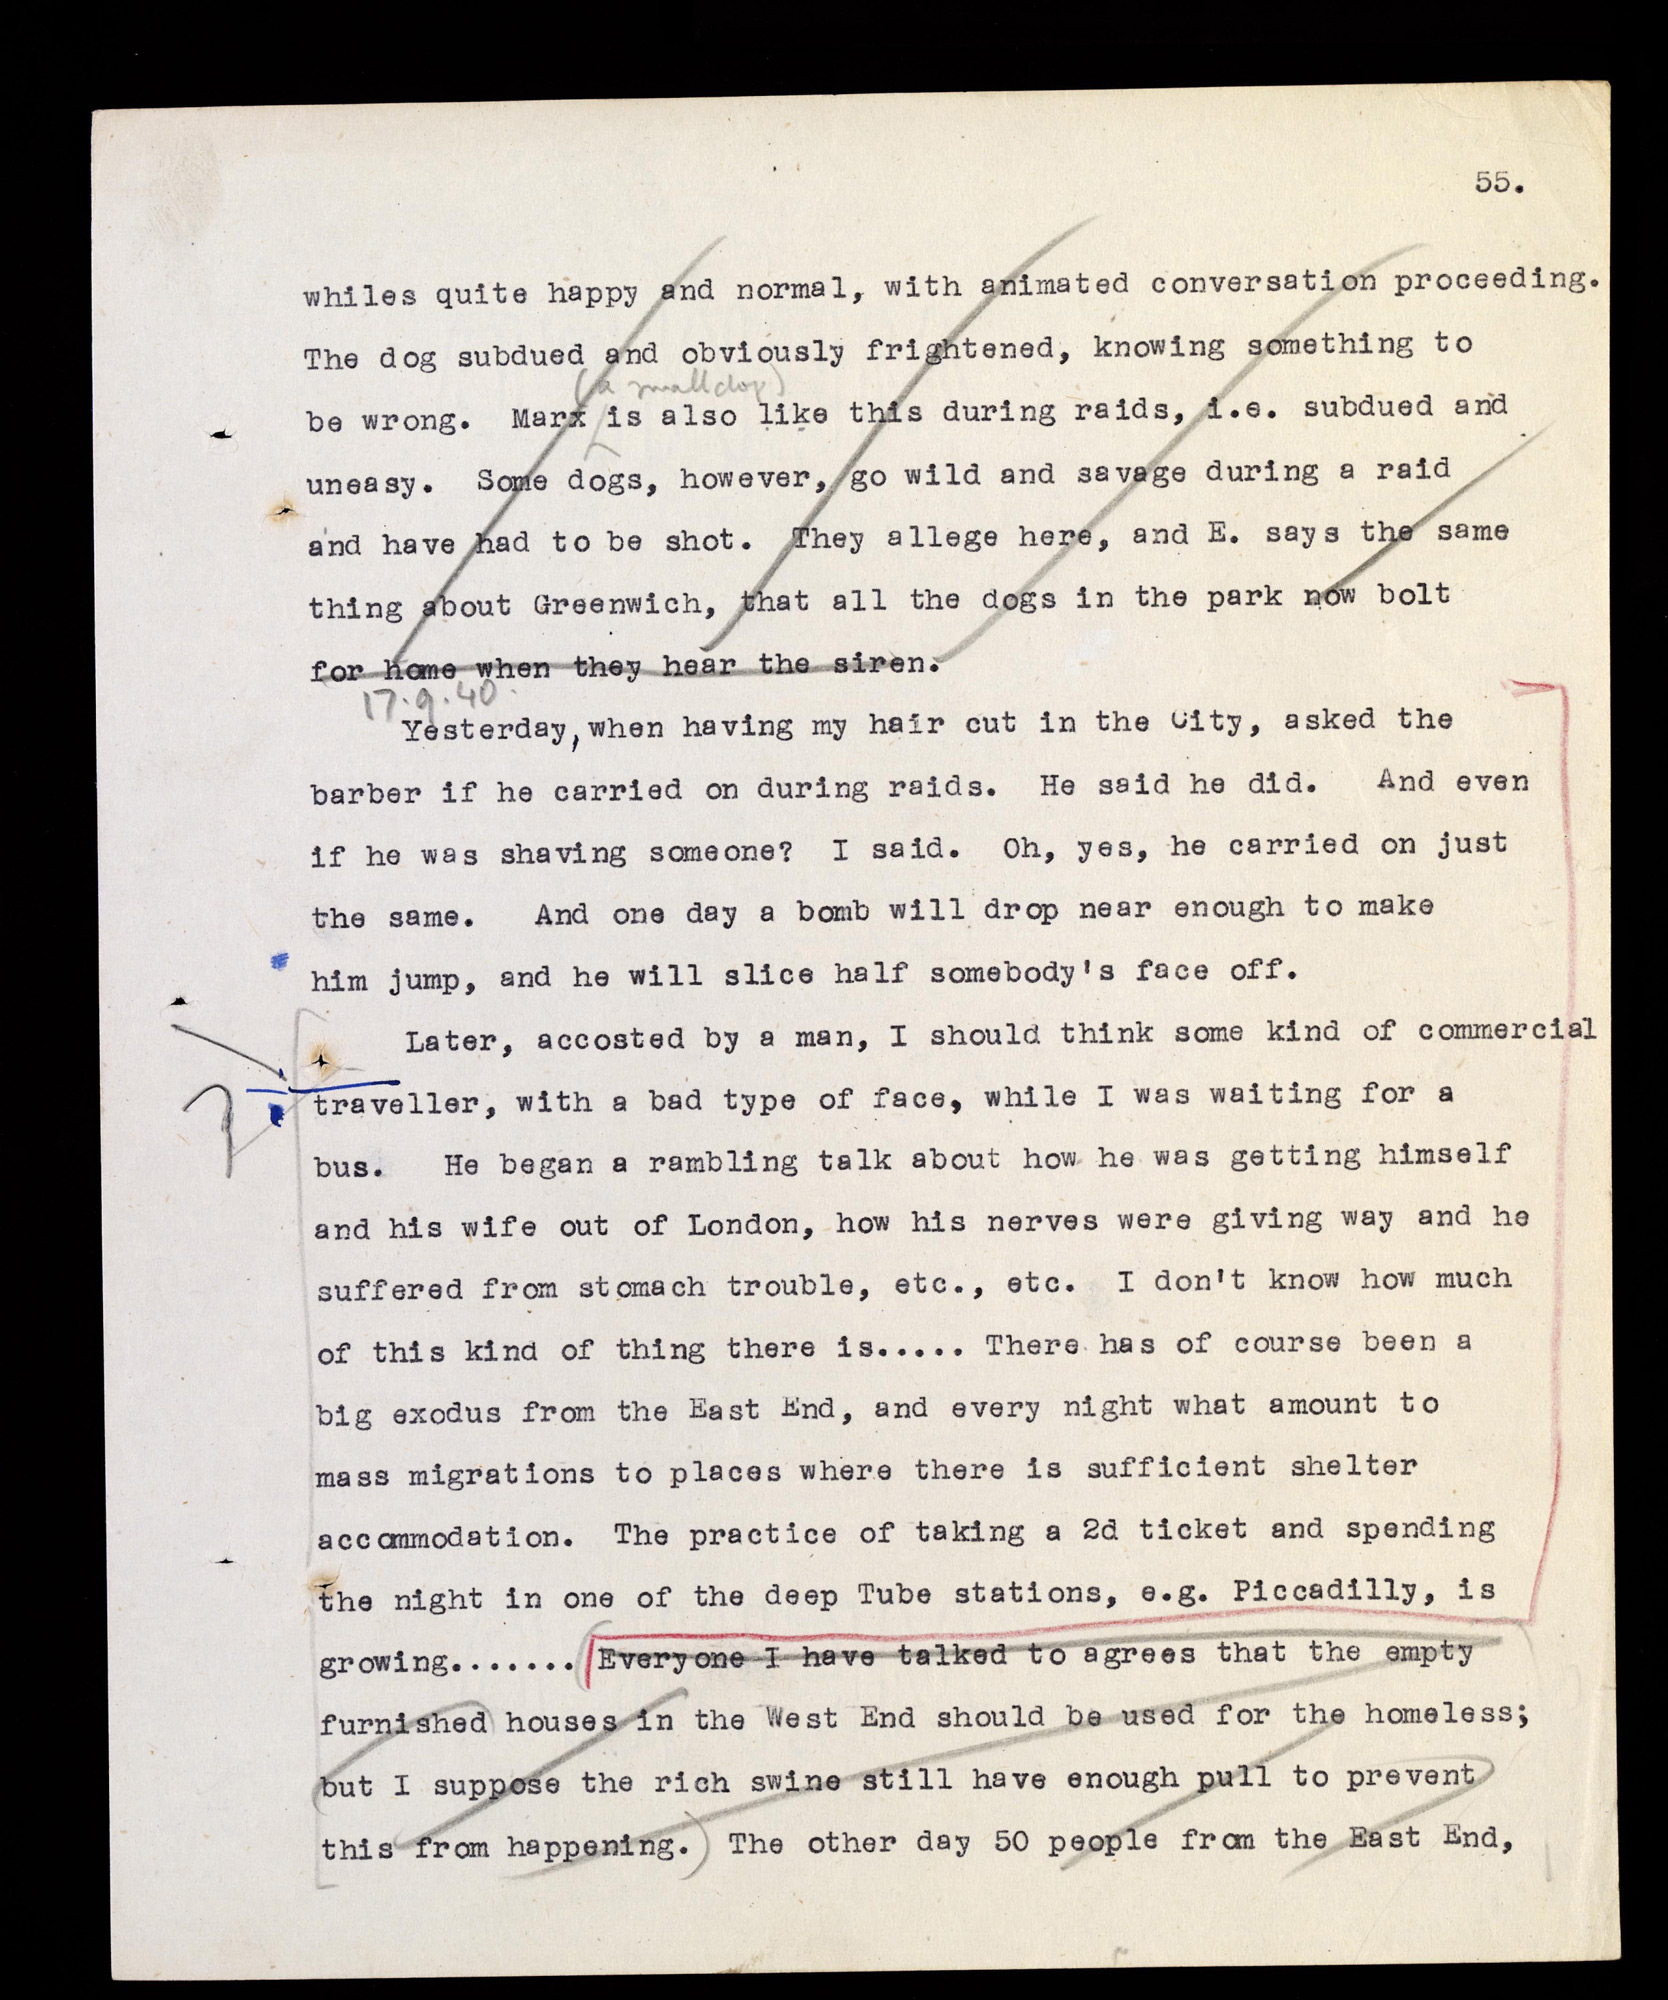 Orwell's Political Diary 1940-1941